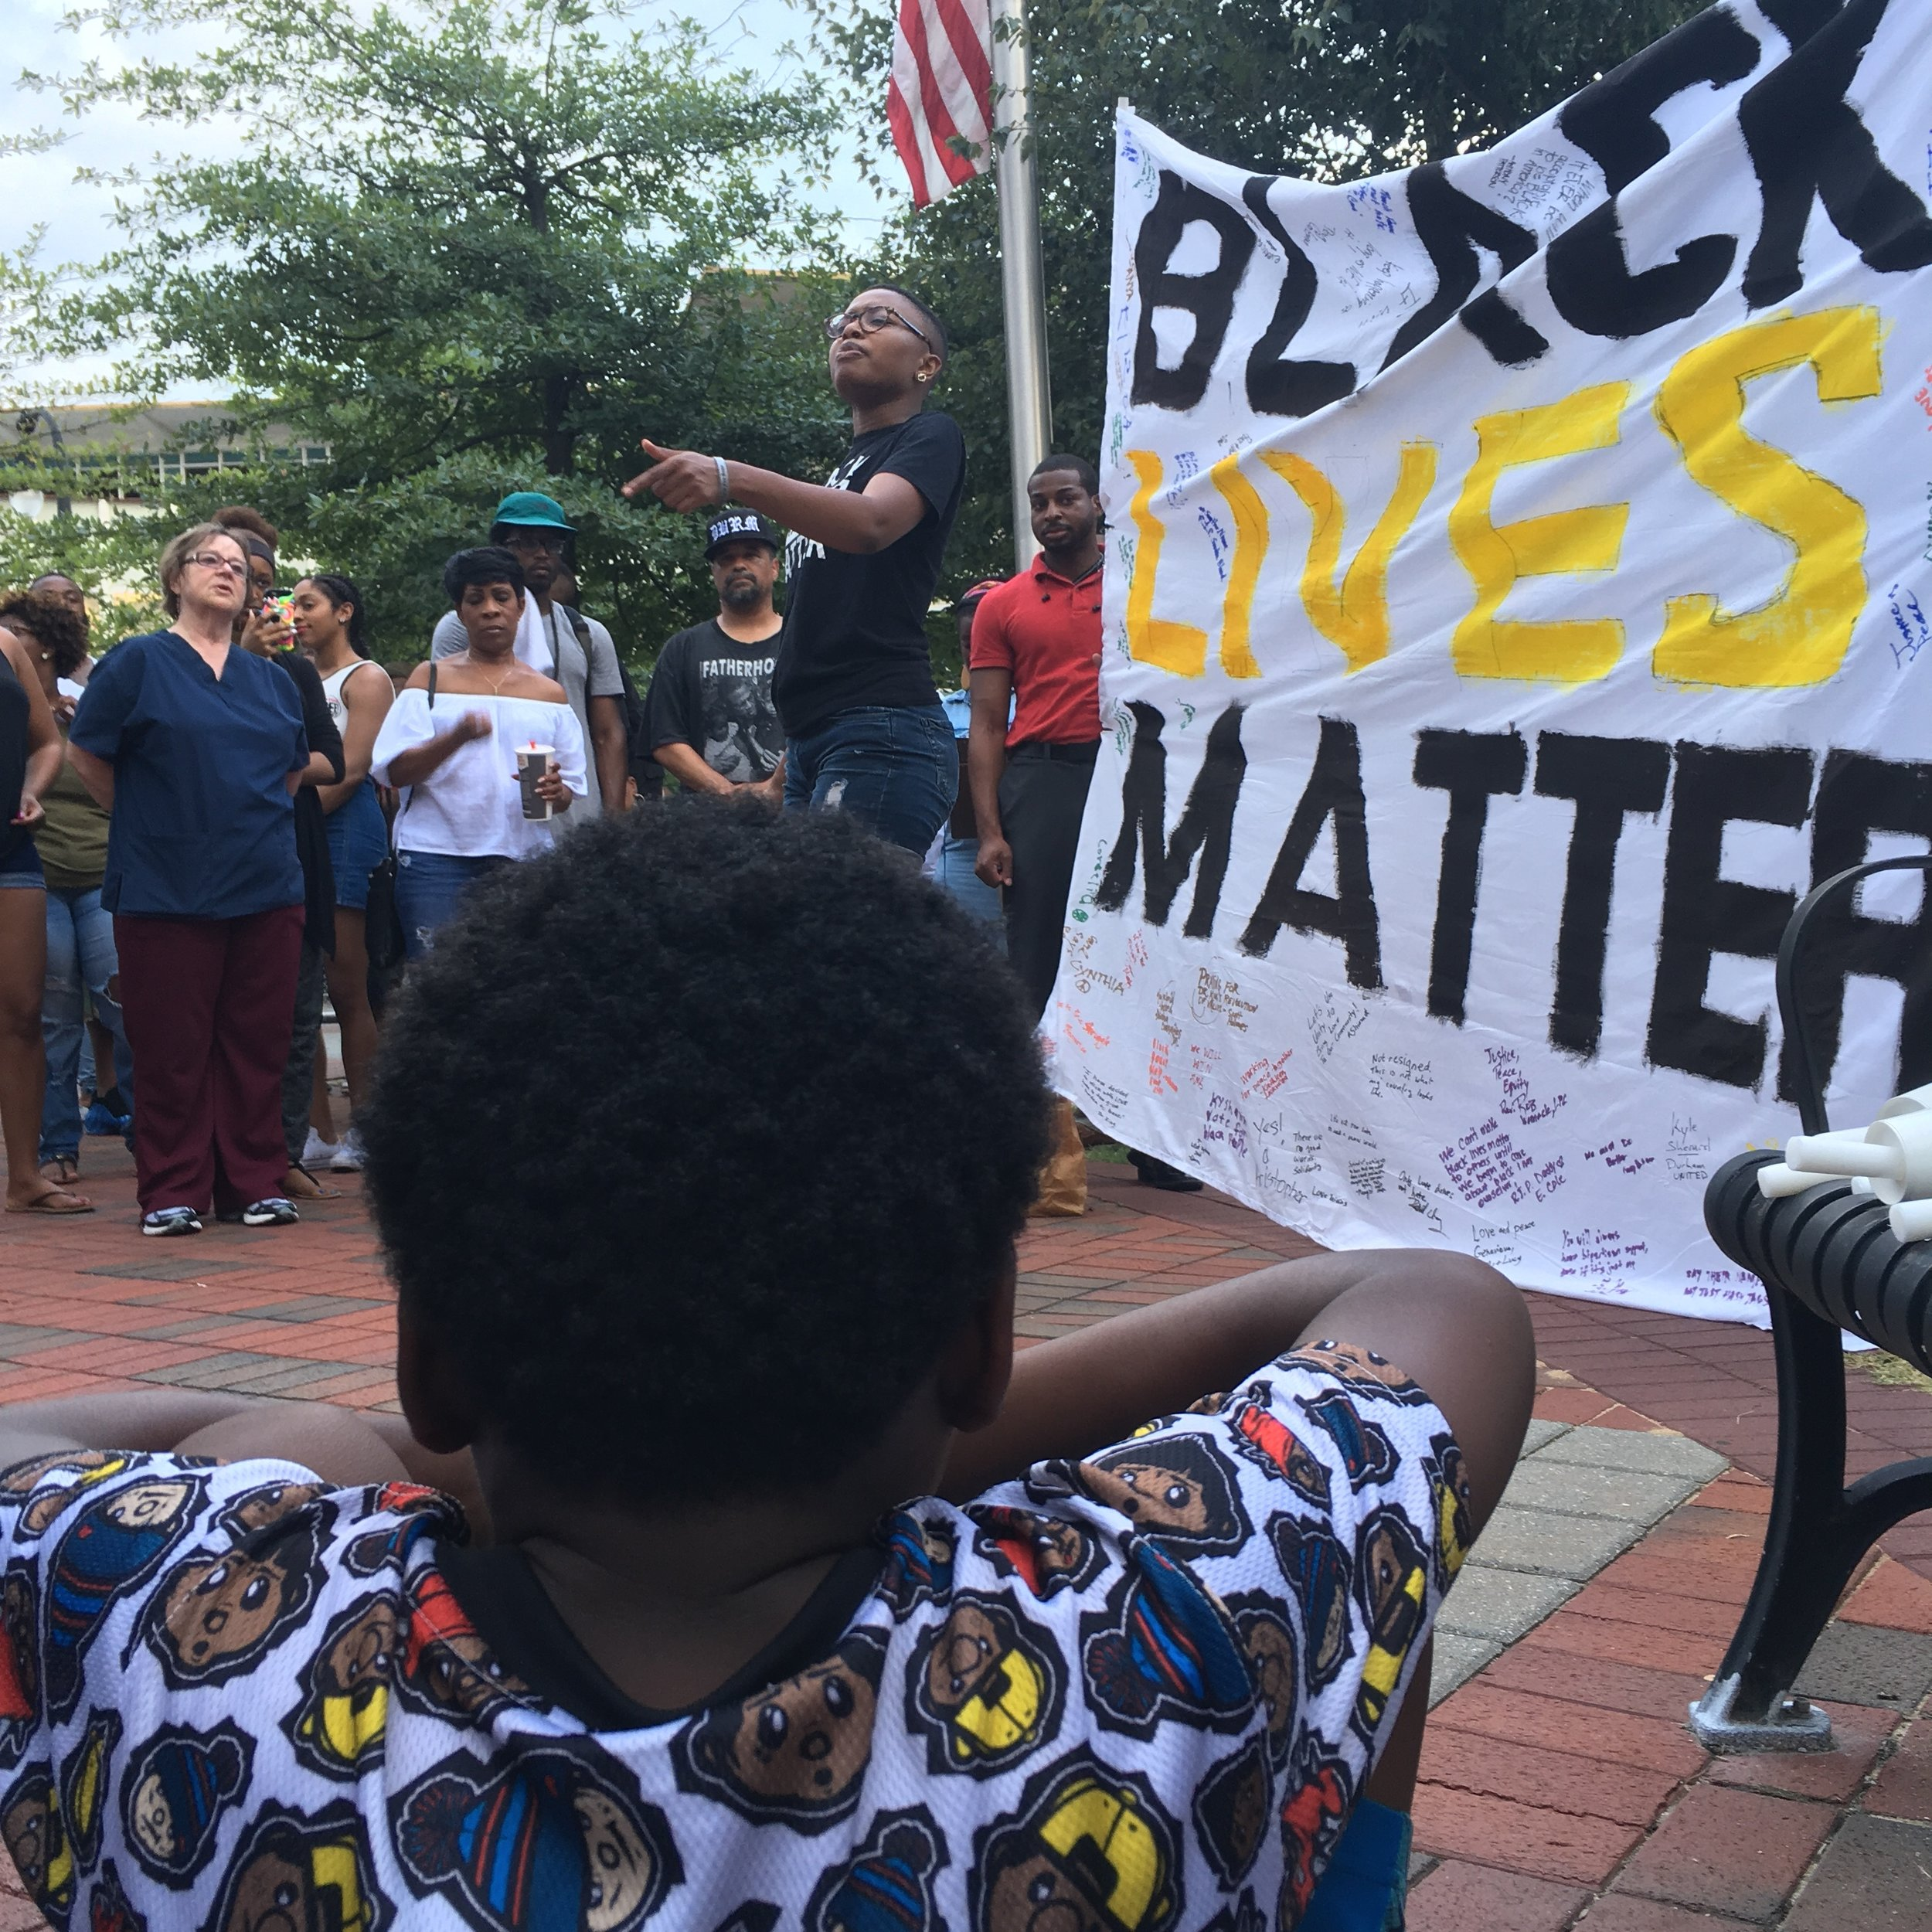 Serenity Hargrove performs  In(formation),   a spoken word poem  at a Black Lives Matter protest in downtown Durham on July 8, 2016.  Photo by Rachel Chang.